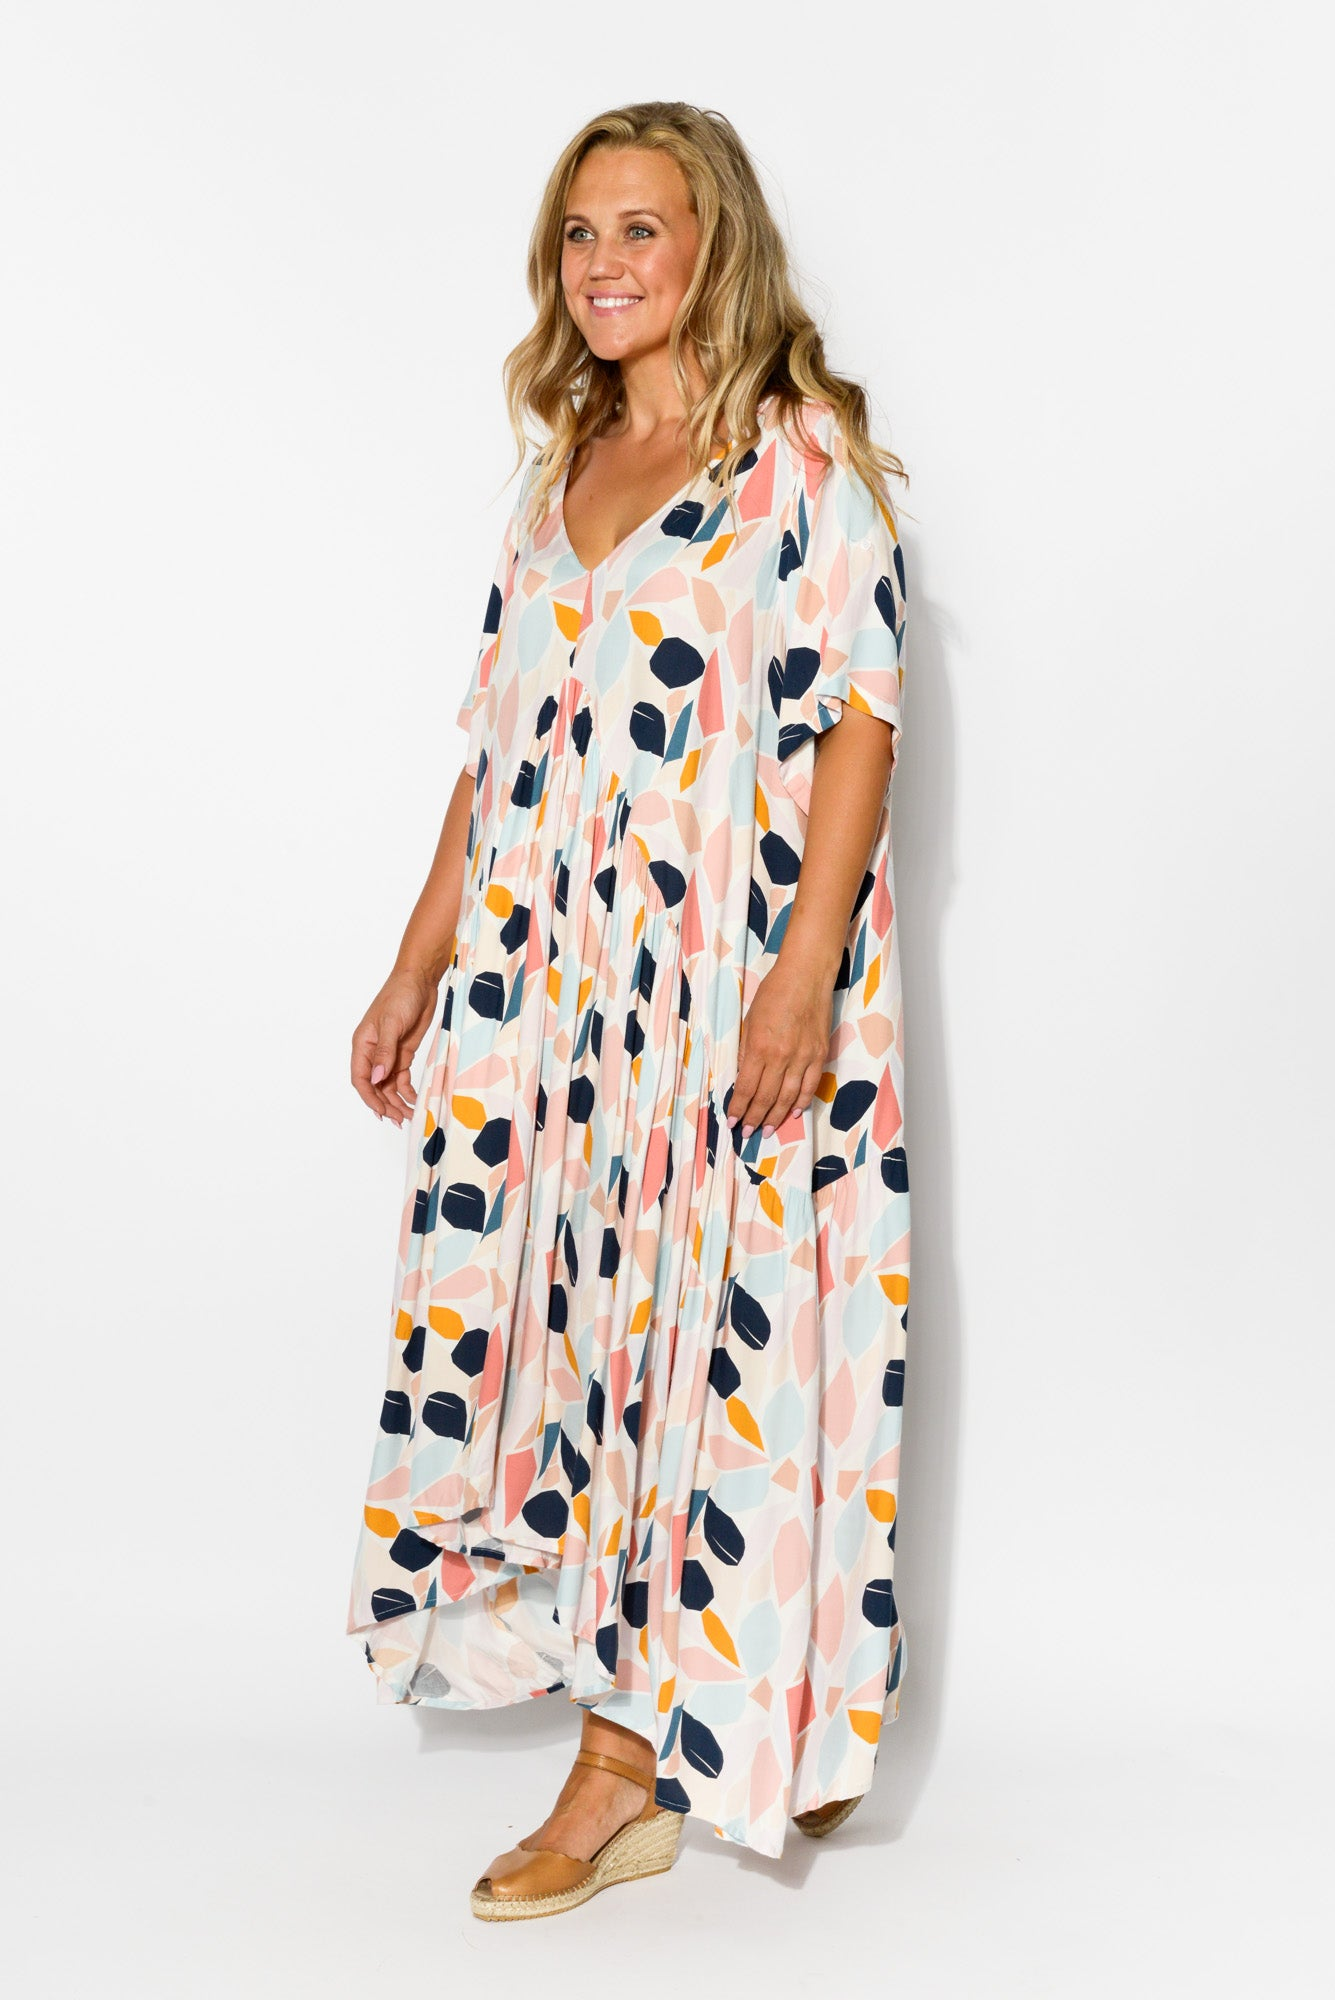 Pastel Peak Maxi Dress - Blue Bungalow